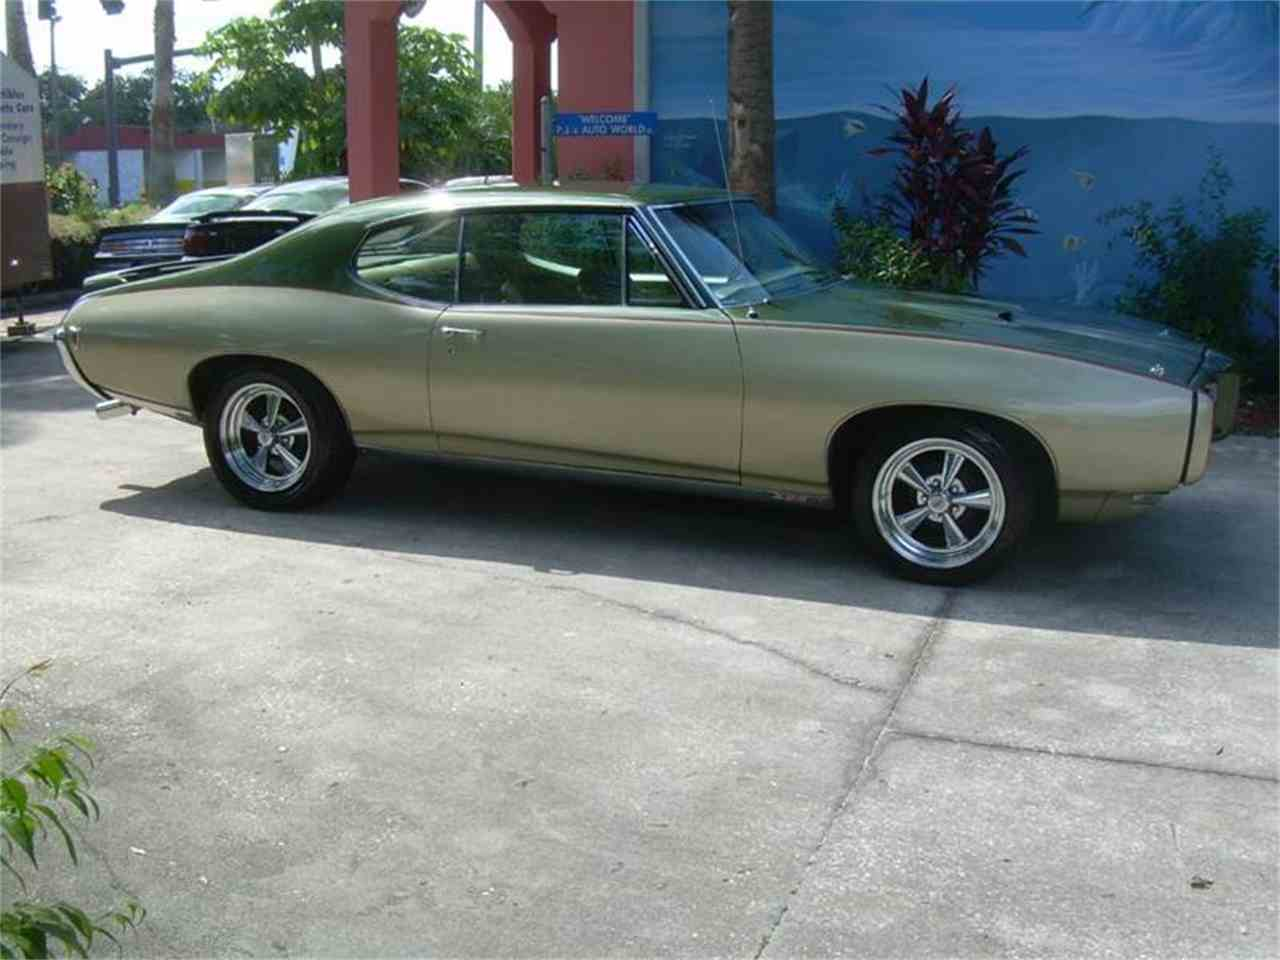 Large Picture of '68 Pontiac LeMans - $29,900.00 Offered by PJ's Auto World - ME7L